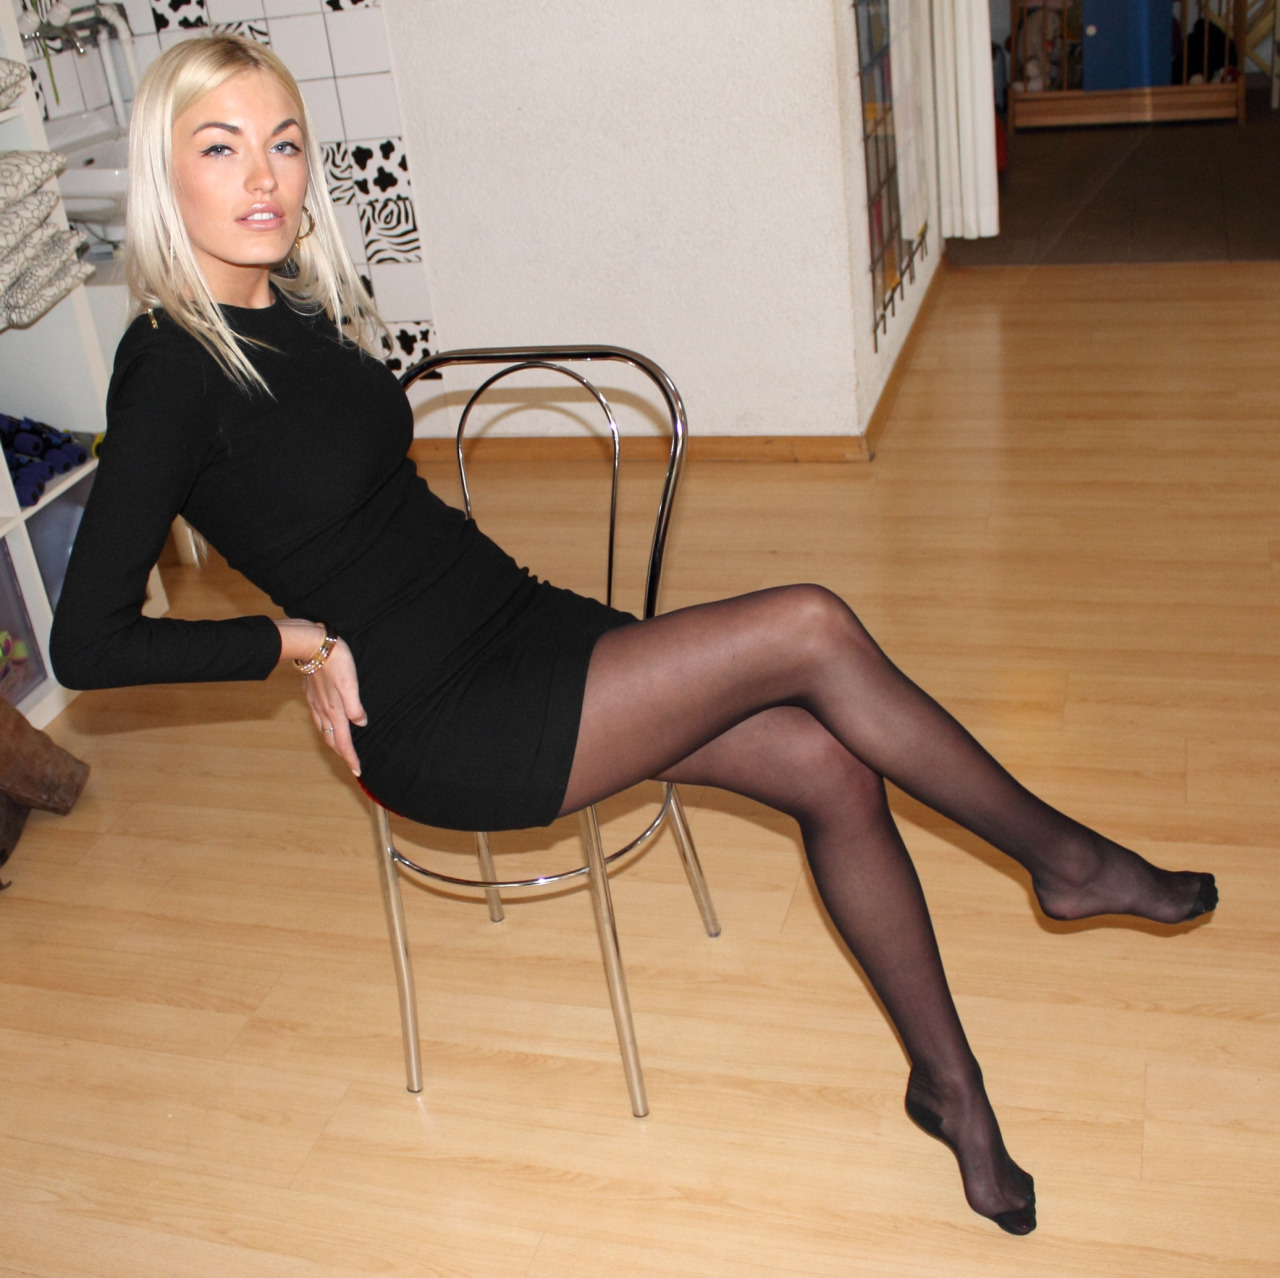 Blonde, barefoot and with black dress (I)